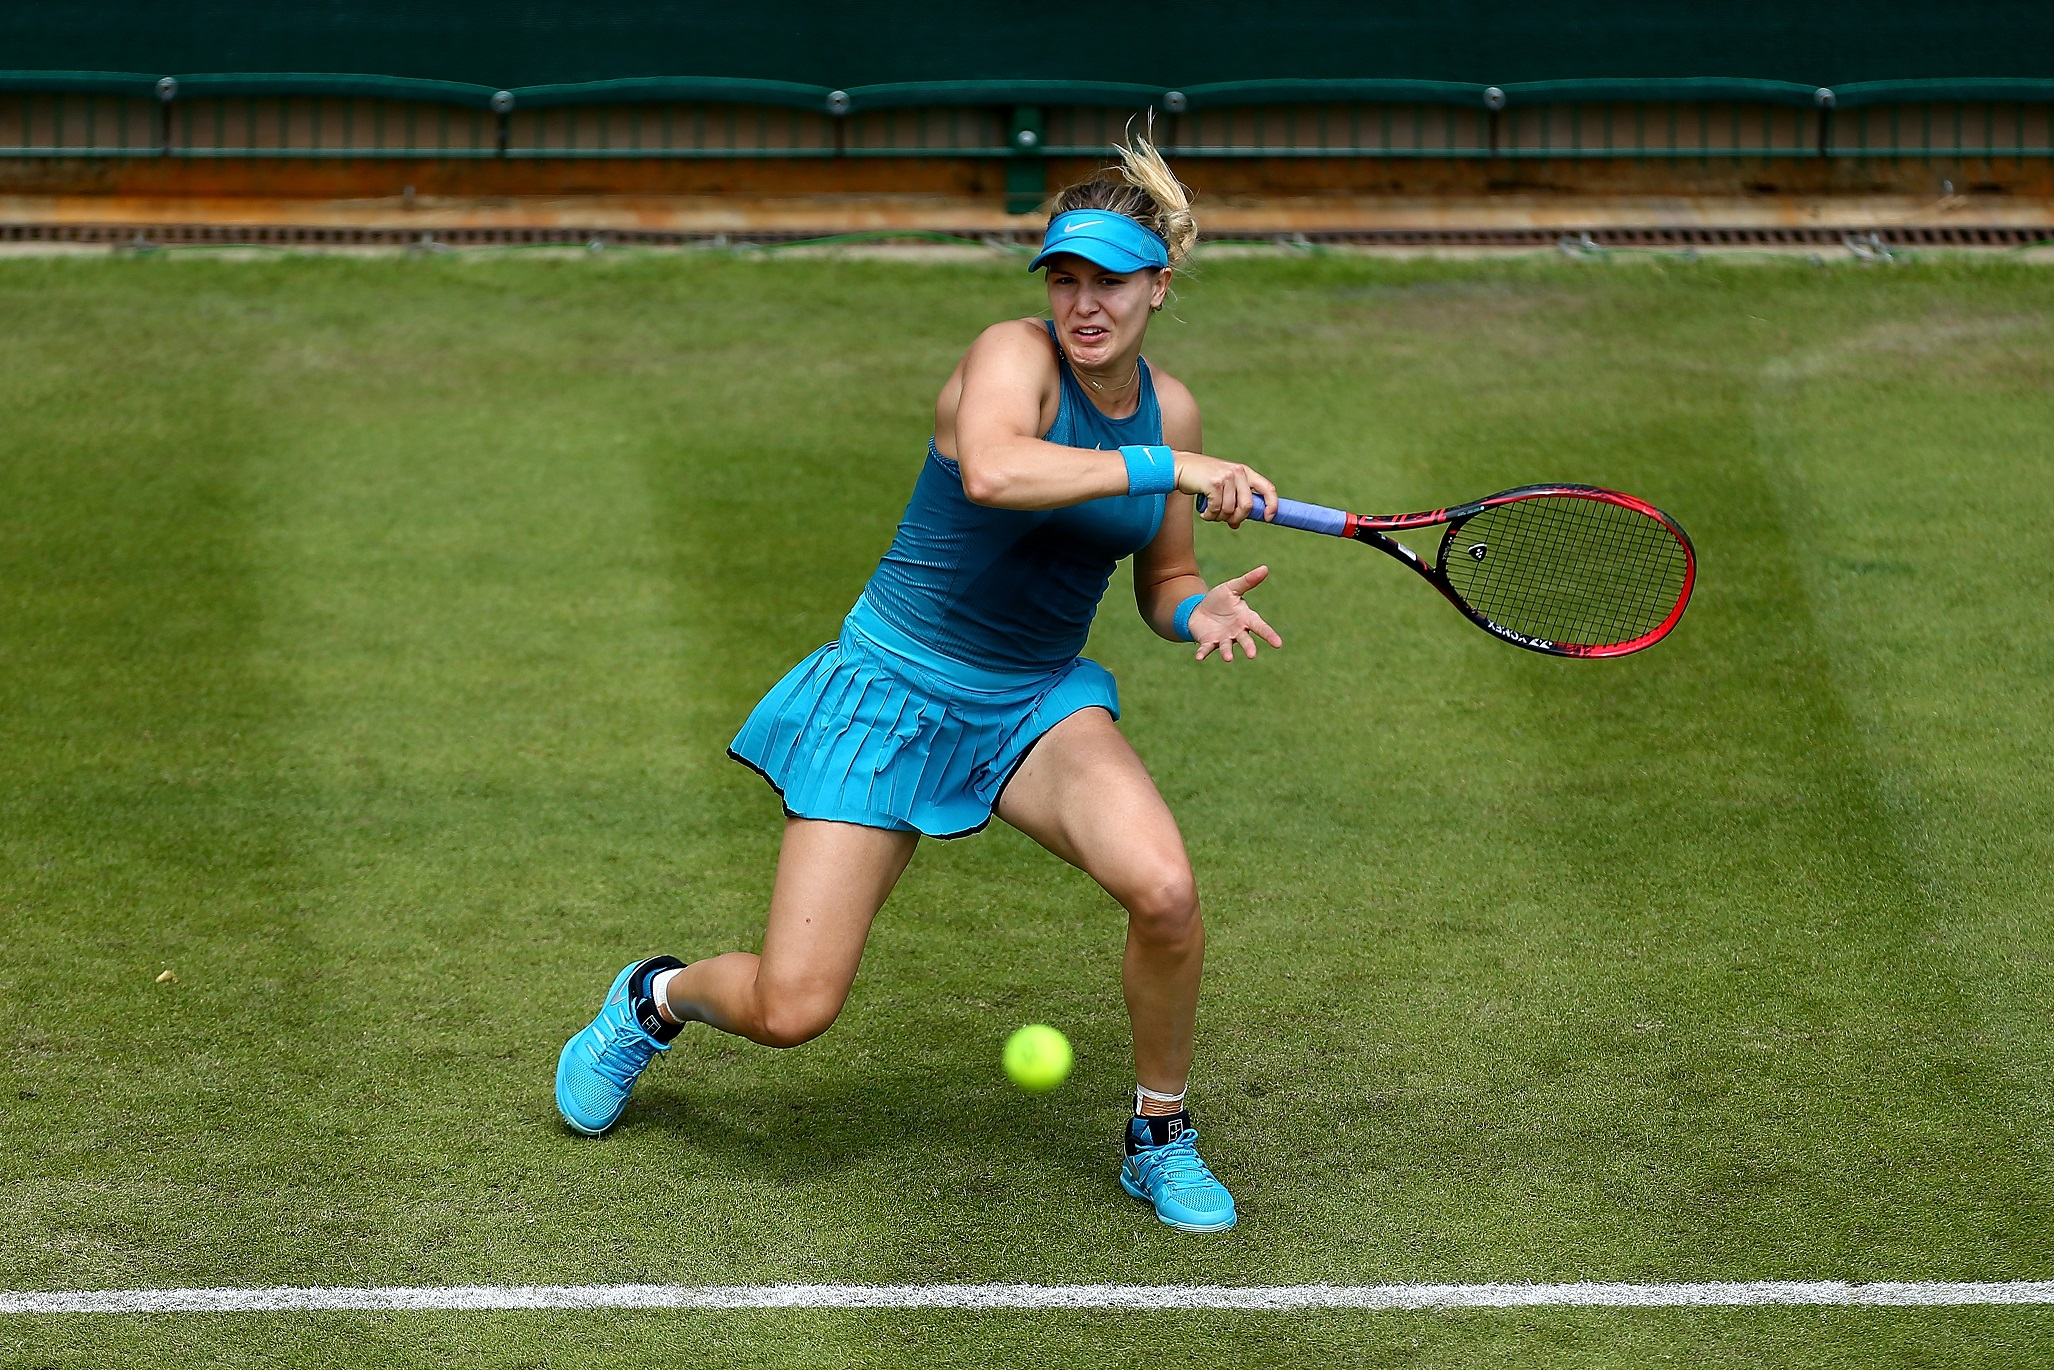 Eugenie Bouchard of Canada plays a forehand